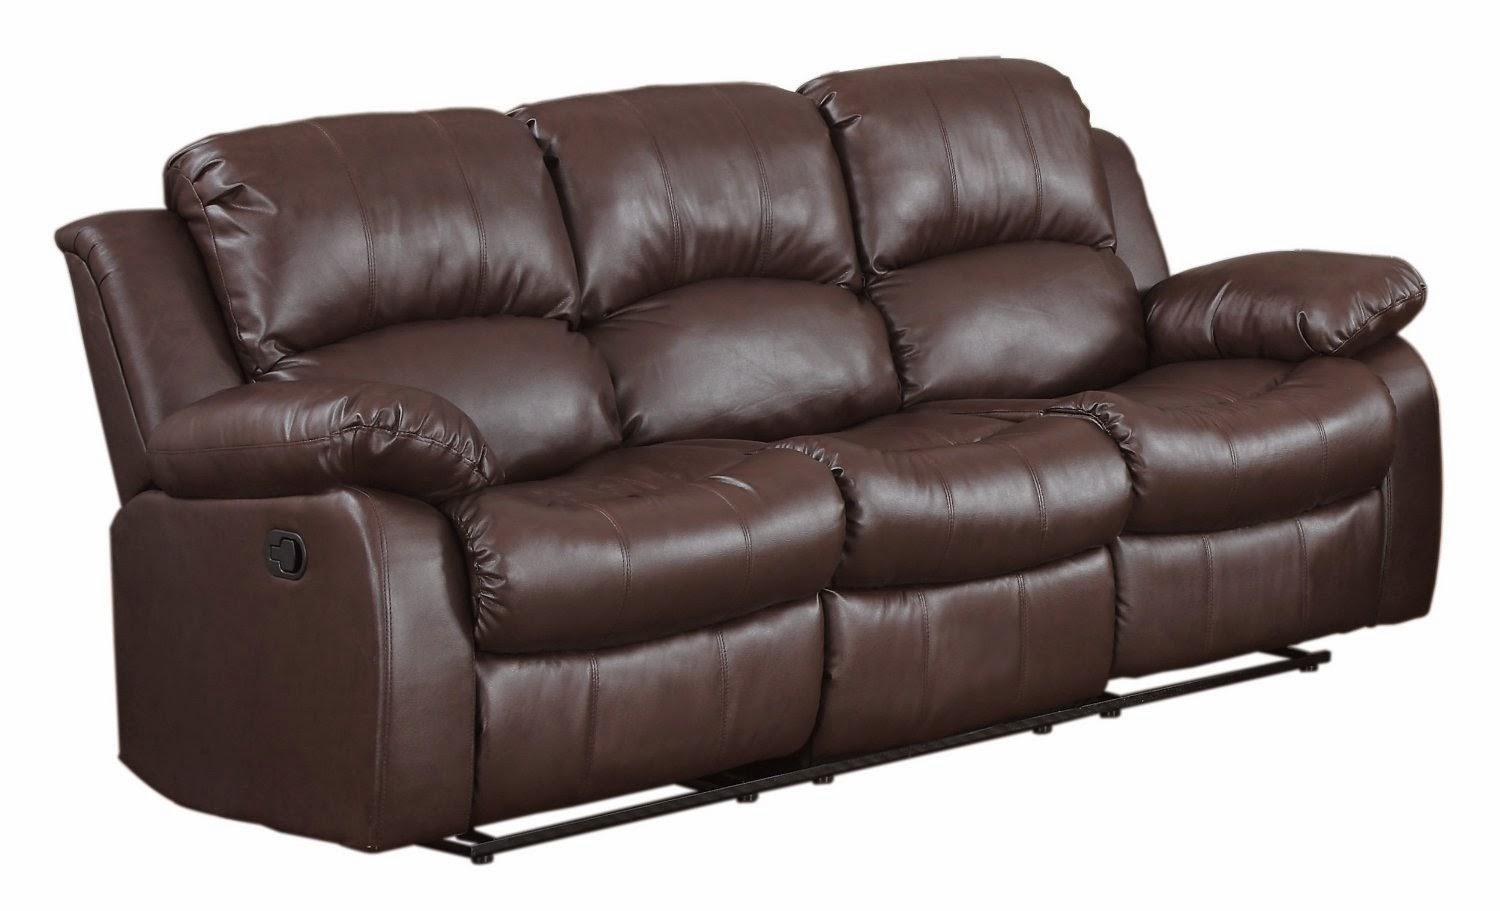 Leather Recliner Sofa Sale Uk